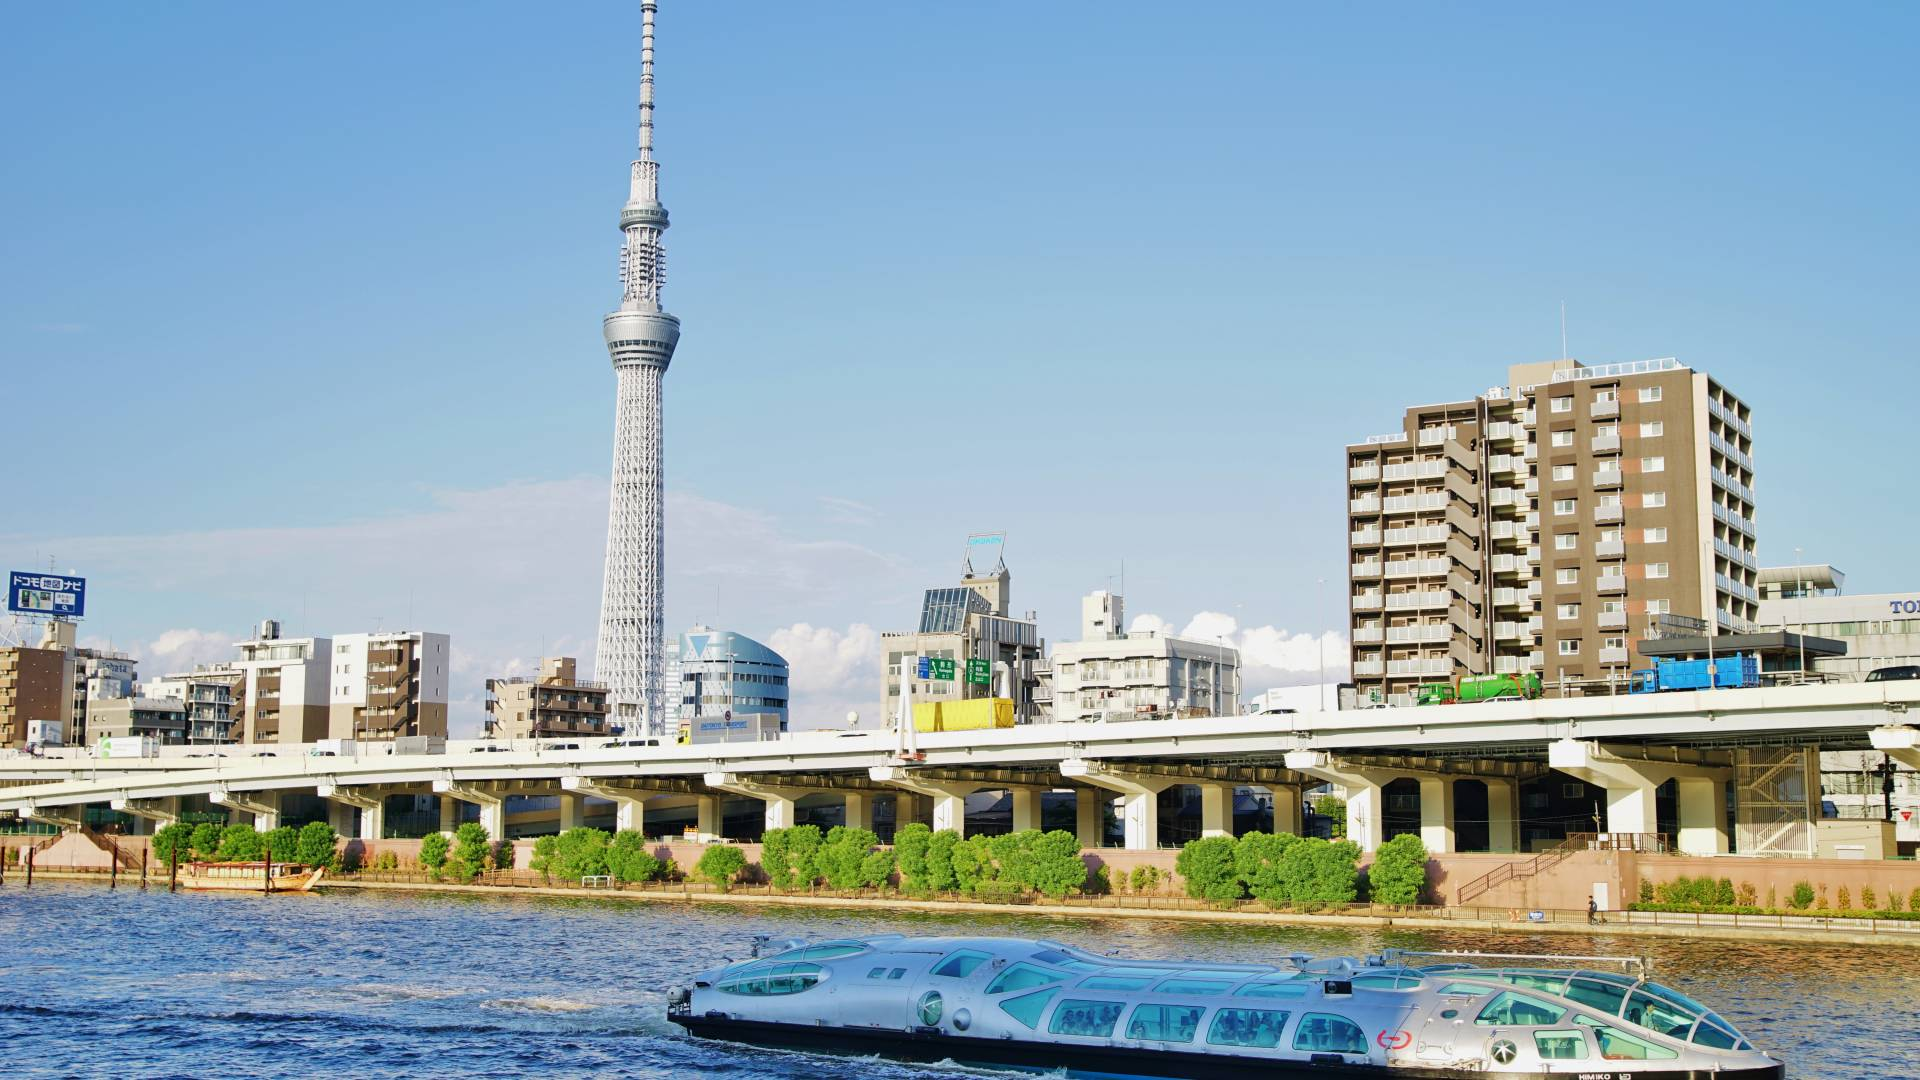 Strolling from Asakusa to Tokyo Skytree